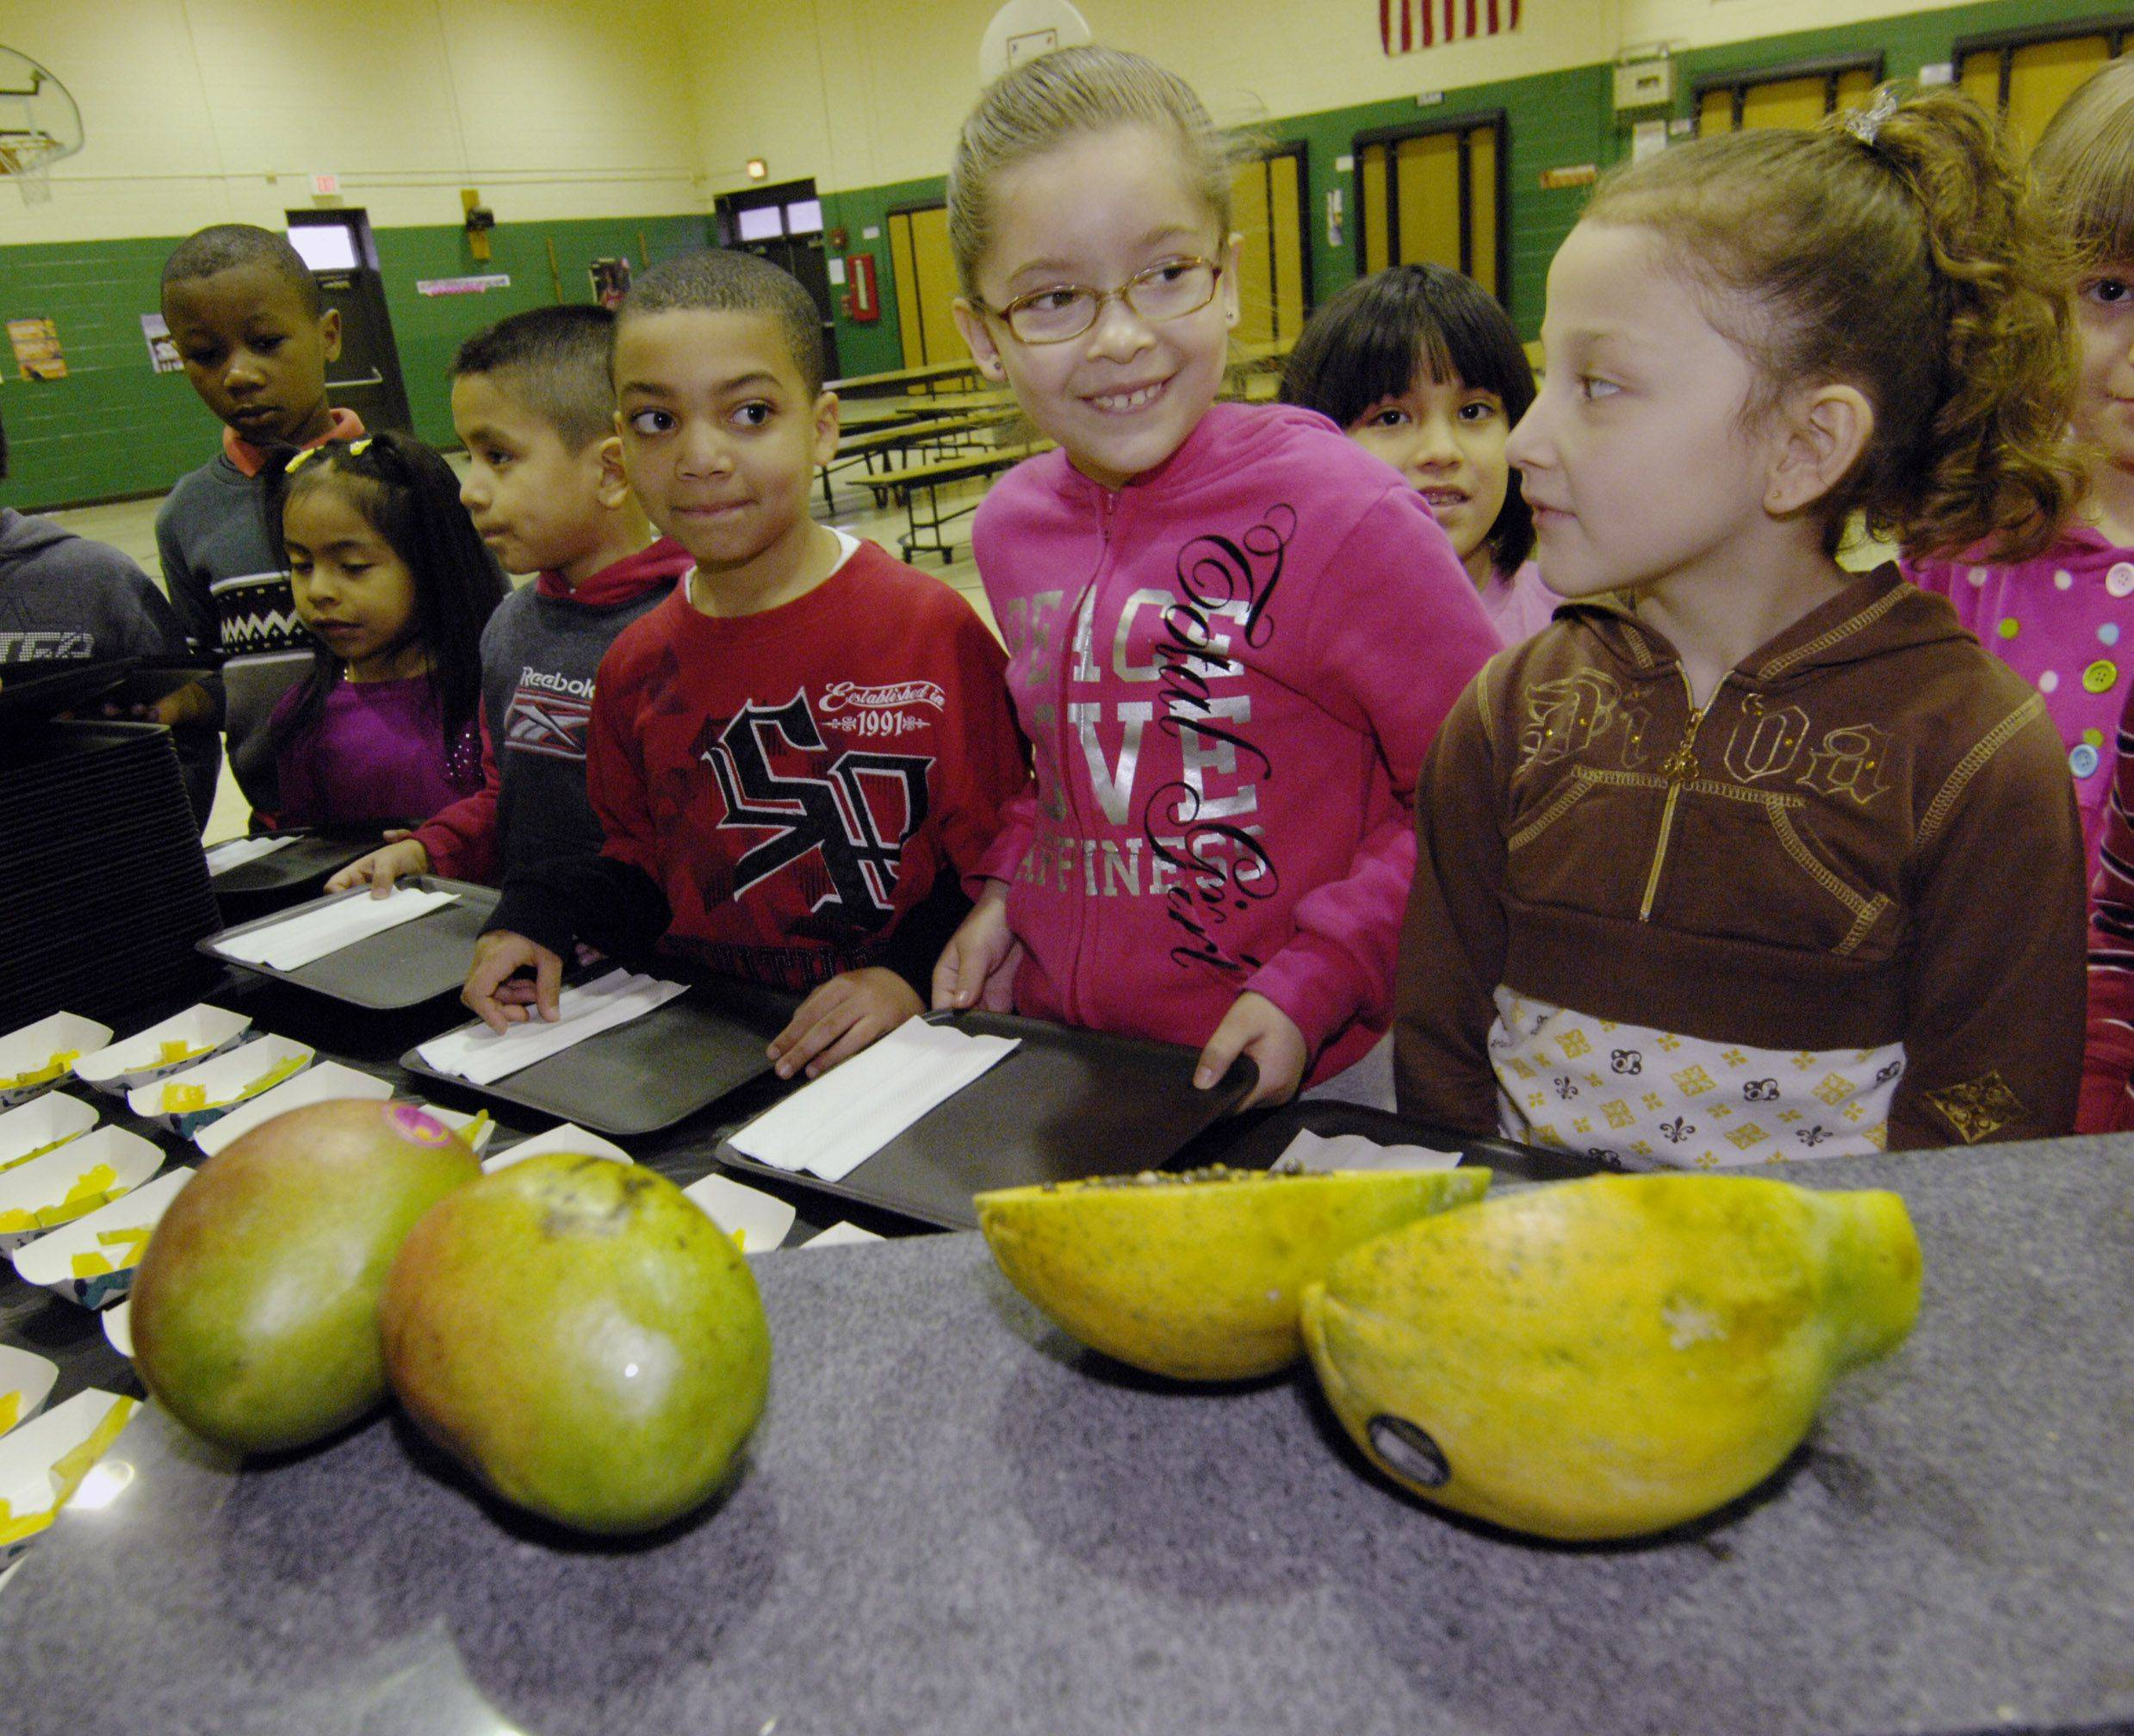 First graders at Reskin Elementary School are all smiles at the exotic fruit table during the school's farmers market event. The event for students is funded through a fresh fruit and vegetable grant program.